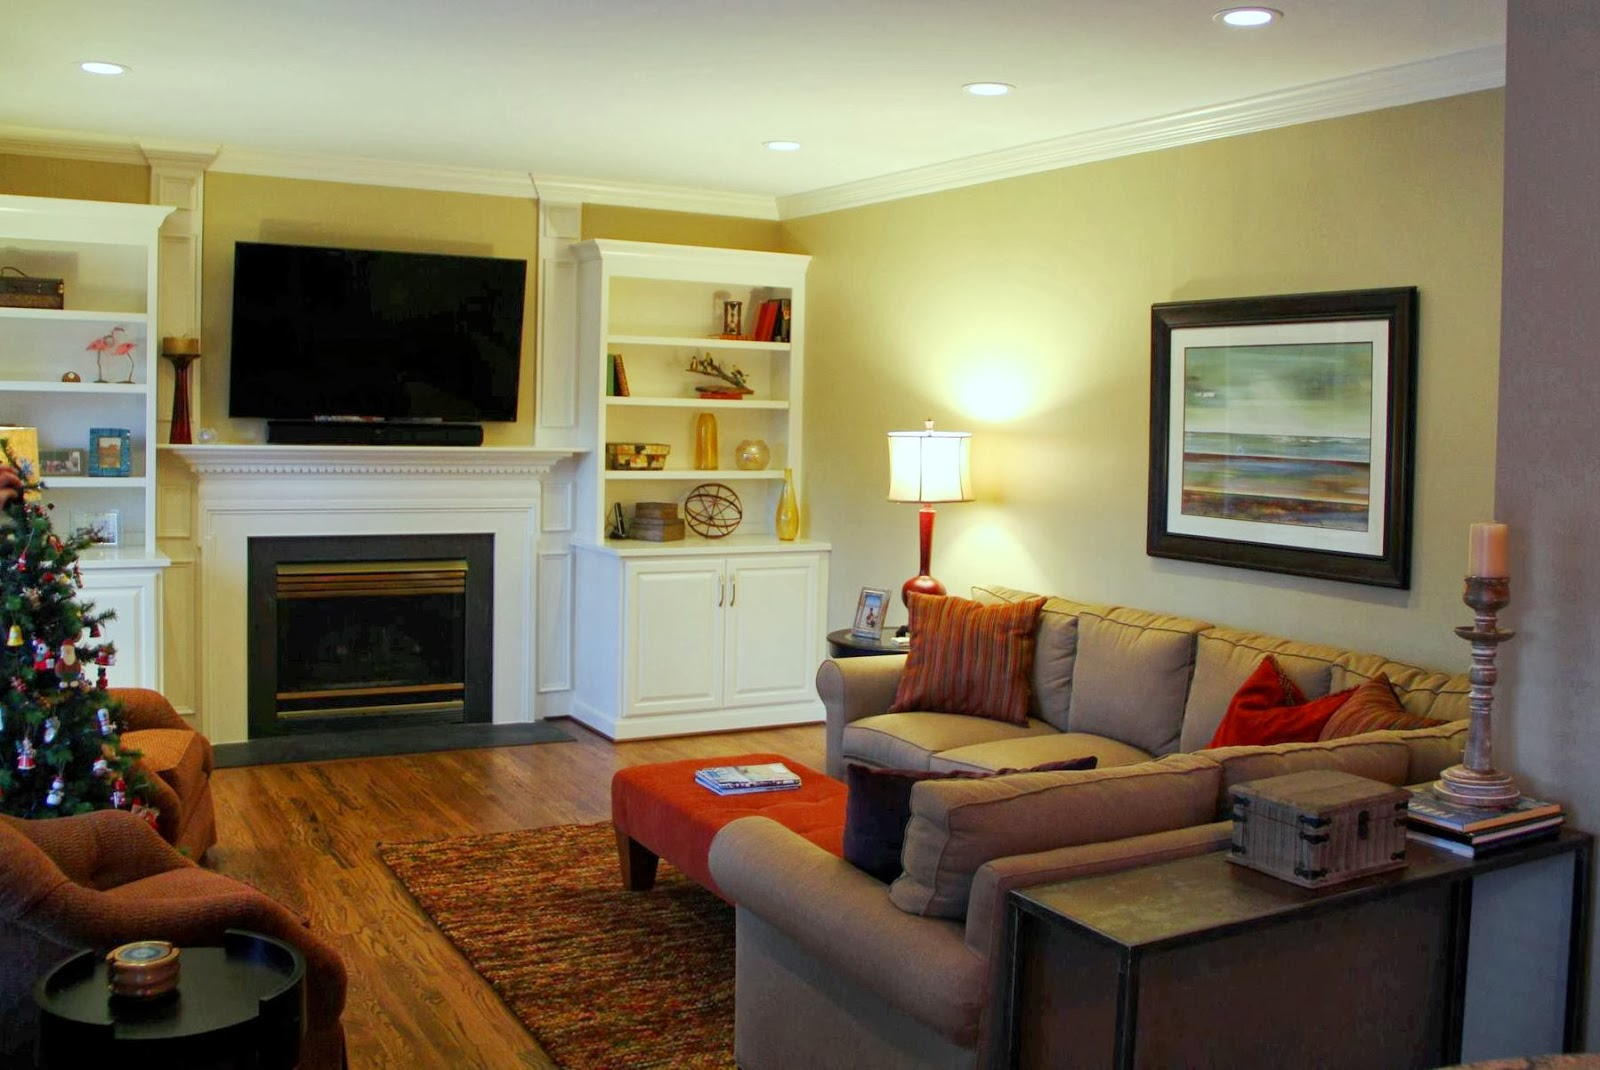 How to maximize seating in a family room for TV viewing ...